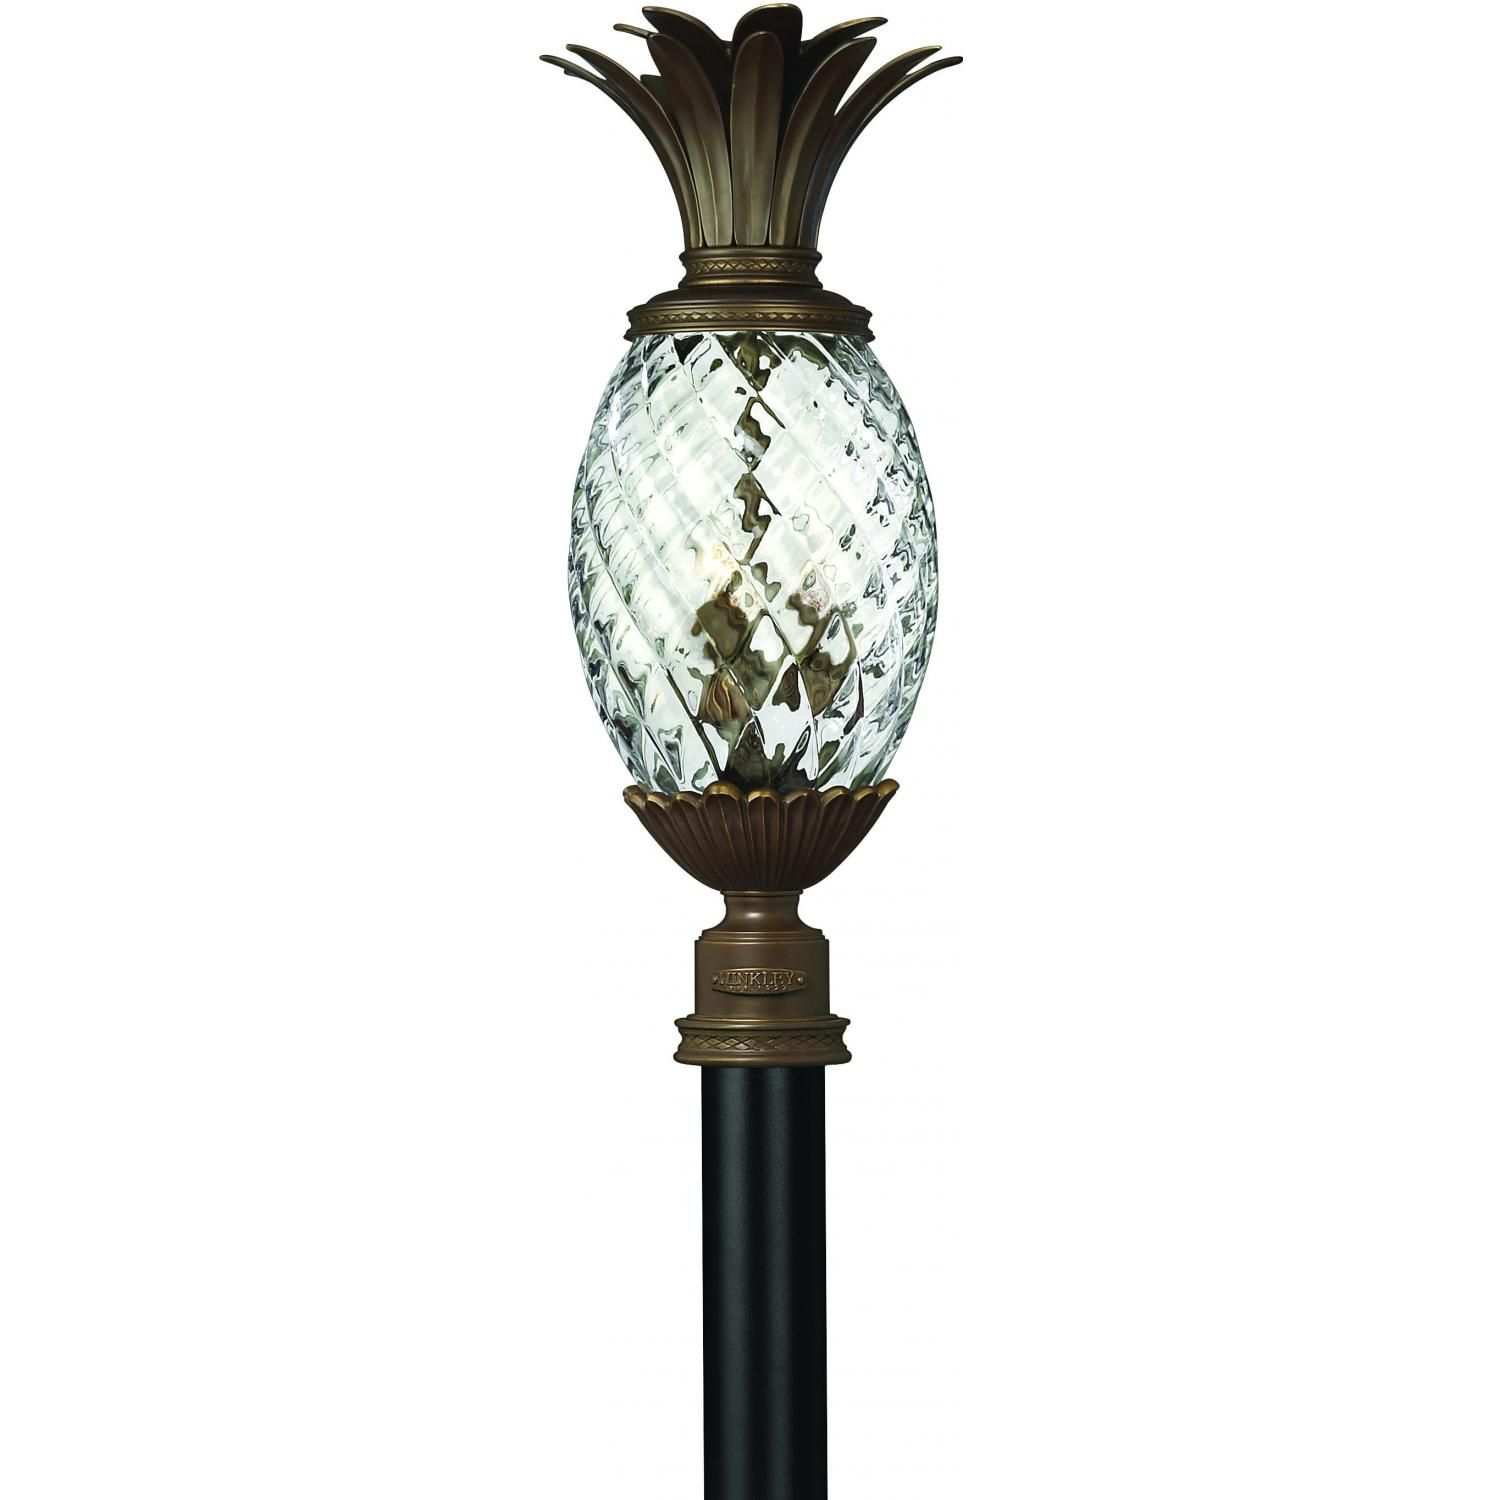 Hinkley Lighting Plantation Three Light 25 Outdoor Post Light Copper Bronze 2221cb Products In 2019 Outdoor Post Lights Hinkley Lighting Lanterns